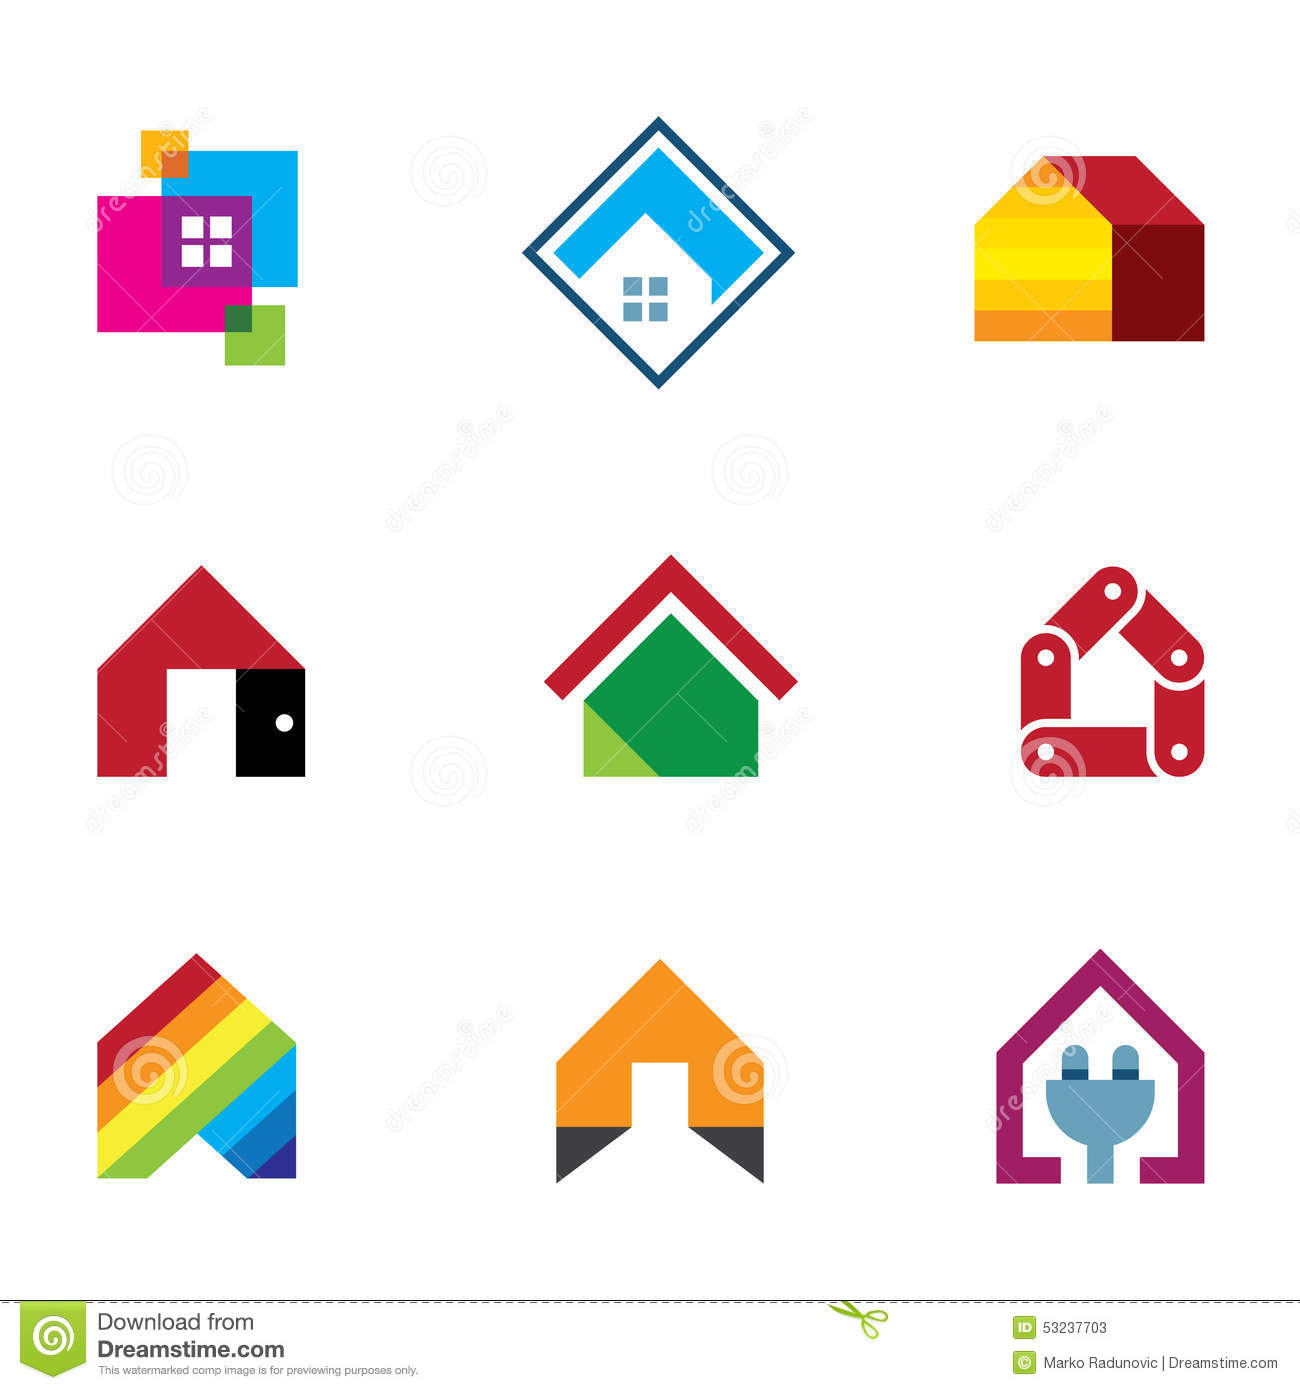 Design safe home real estate interior construction logo icon stock design safe home real estate interior construction logo icon stock illustration illustration of design illustration 53237703 colourmoves